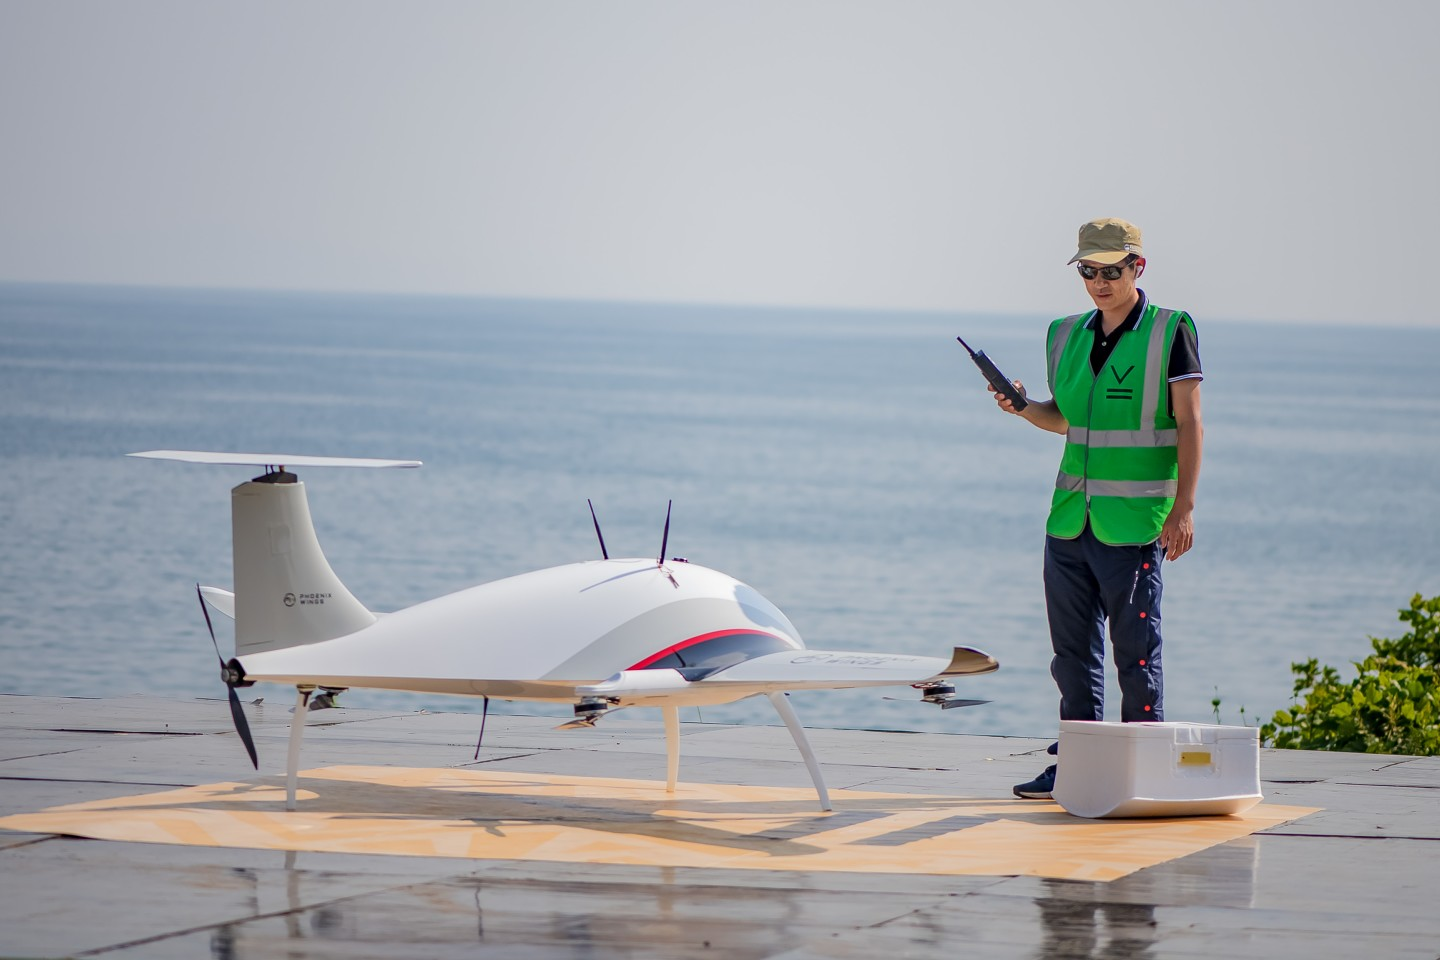 The Manta Ray was the largest drone in the contest